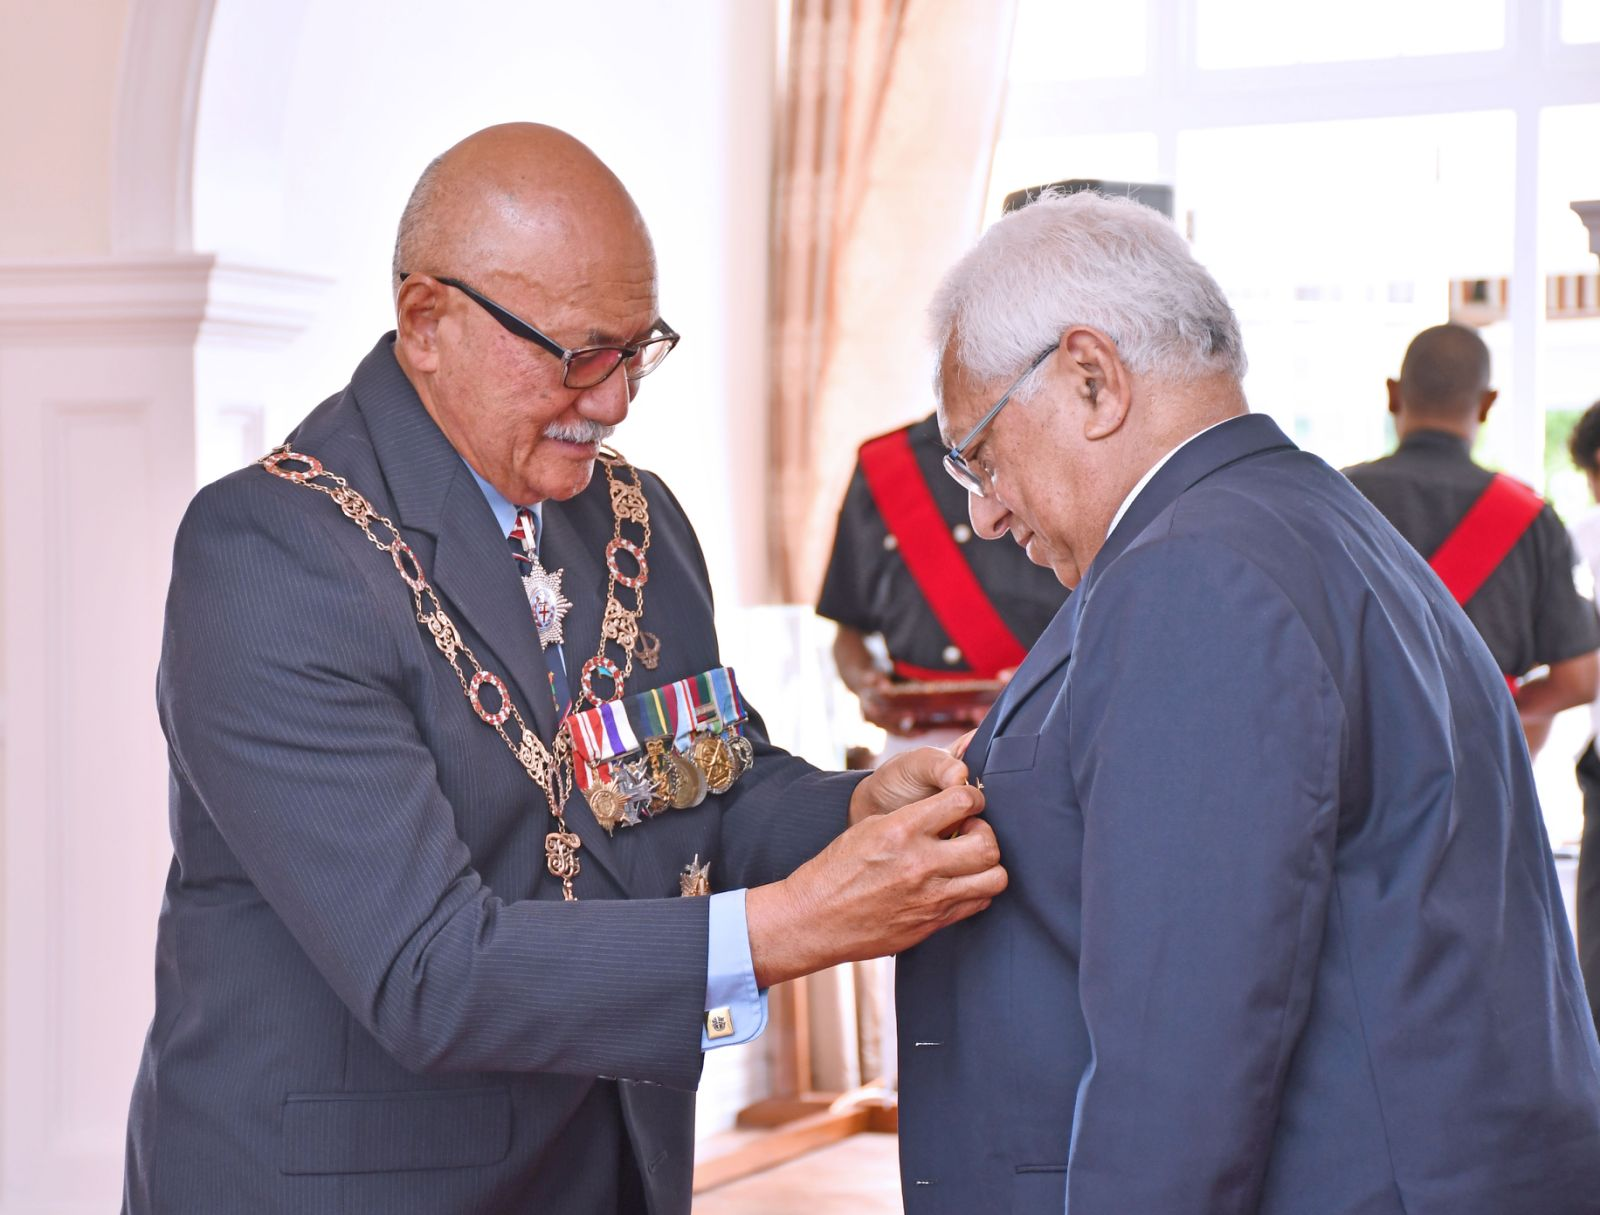 Dr Mitchell awarded Fiji's 50th independence anniversary medal for his sporting legacy